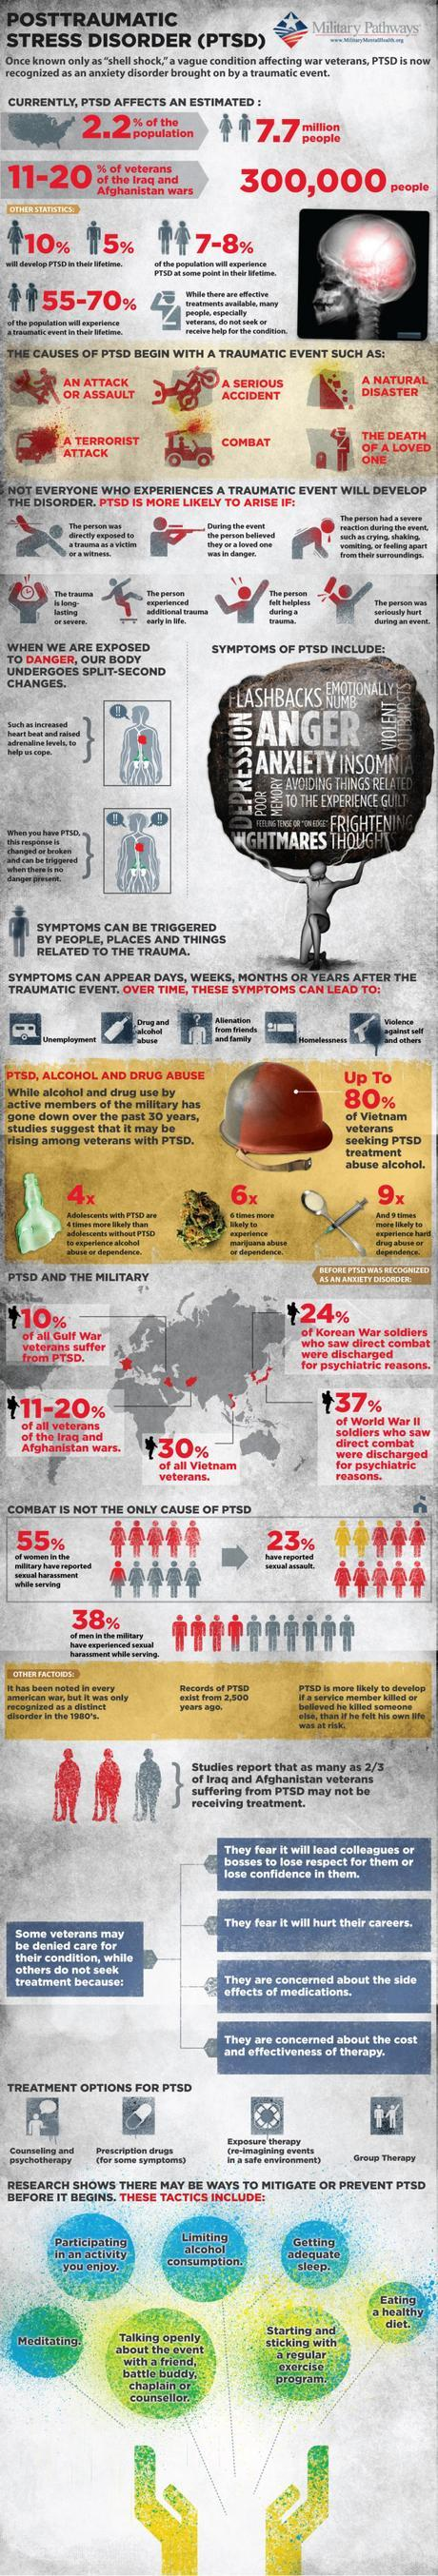 Learning About Post-Traumatic Stress Disorder #INFOGRAPHIC #VIDEO